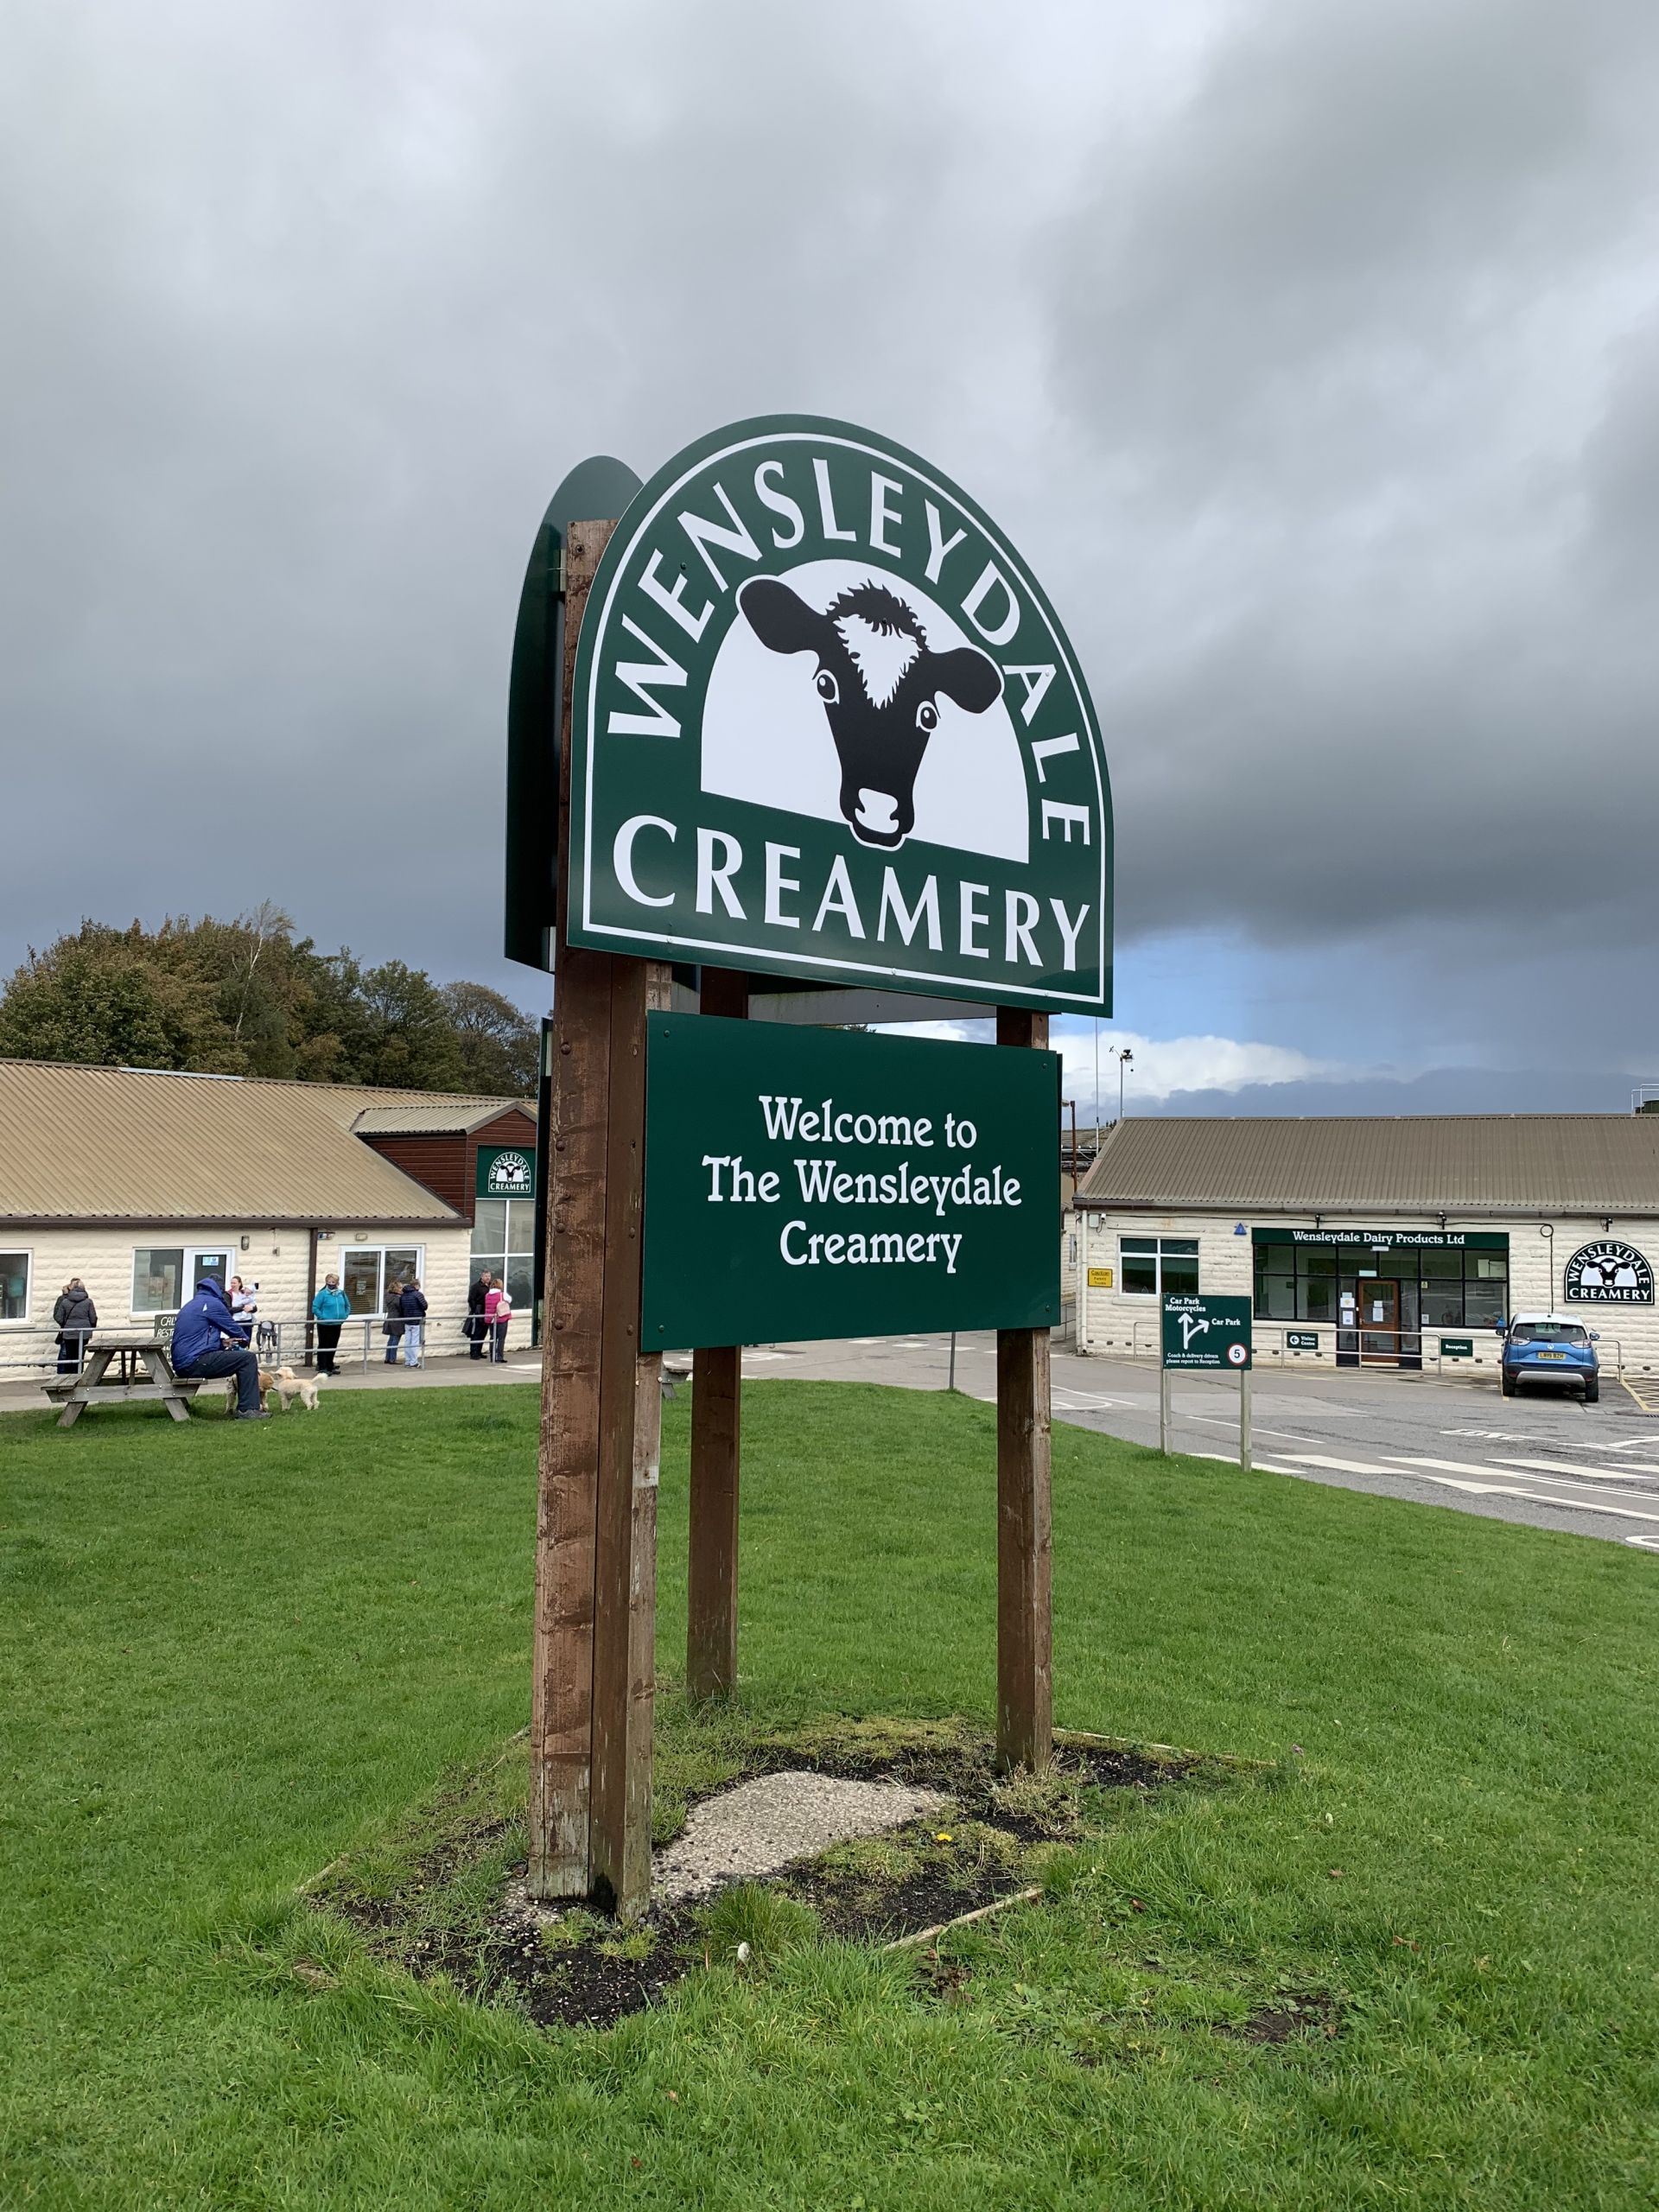 Wensleydale Creamery in the Yorkshire Dales